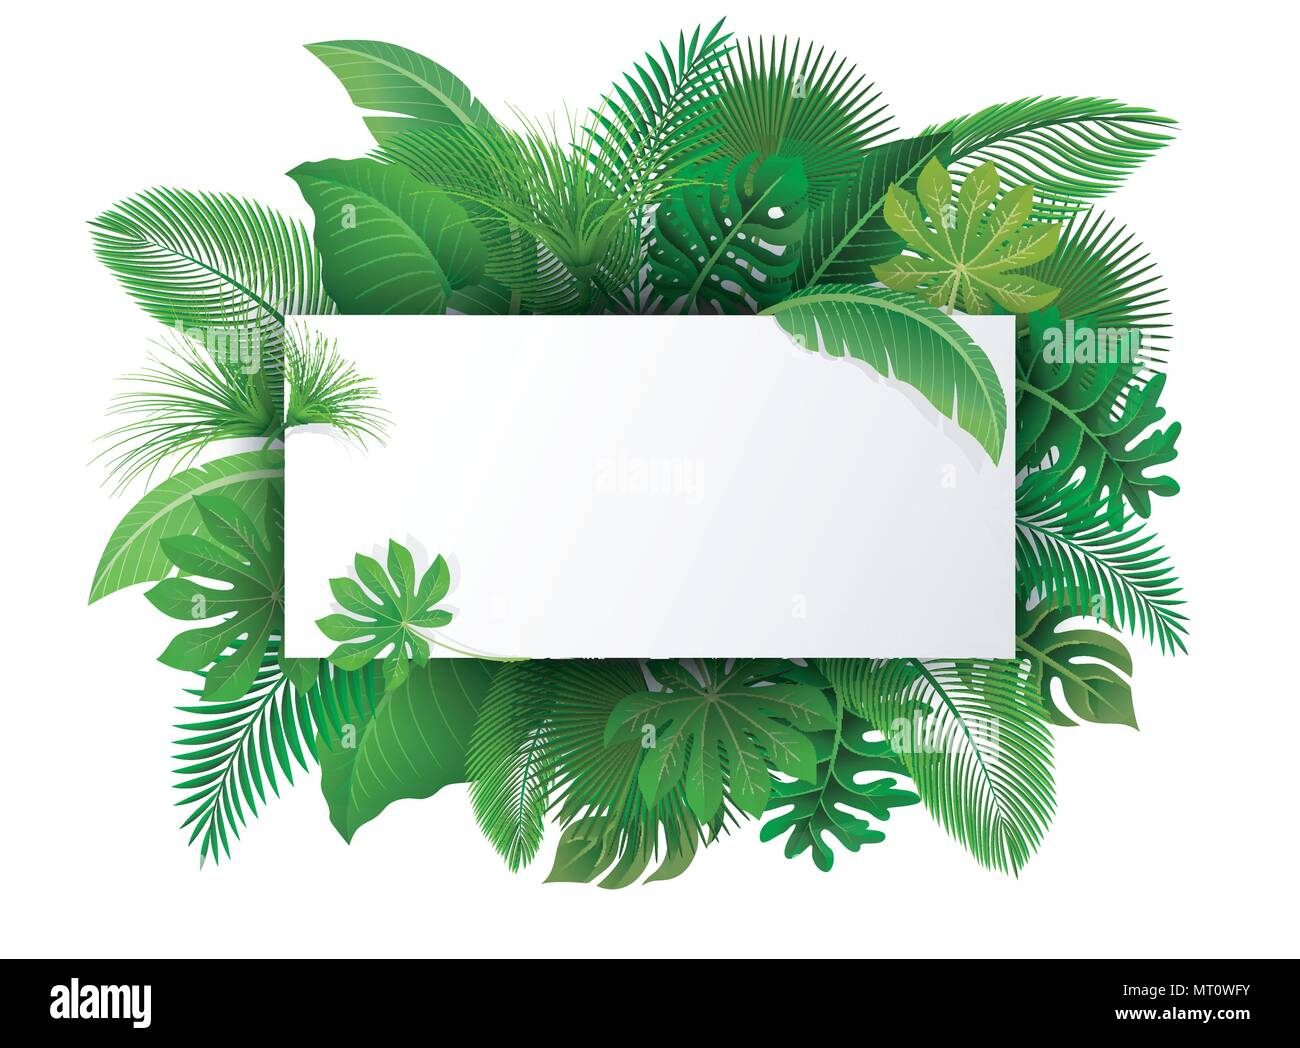 Sign With Text Space Of Tropical Leaves Suitable For Nature Concept Vacation And Summer Holiday Vector Illustration Stock Vector Image Art Alamy Take a vacation without leaving your home! https www alamy com sign with text space of tropical leaves suitable for nature concept vacation and summer holiday vector illustration image186875471 html